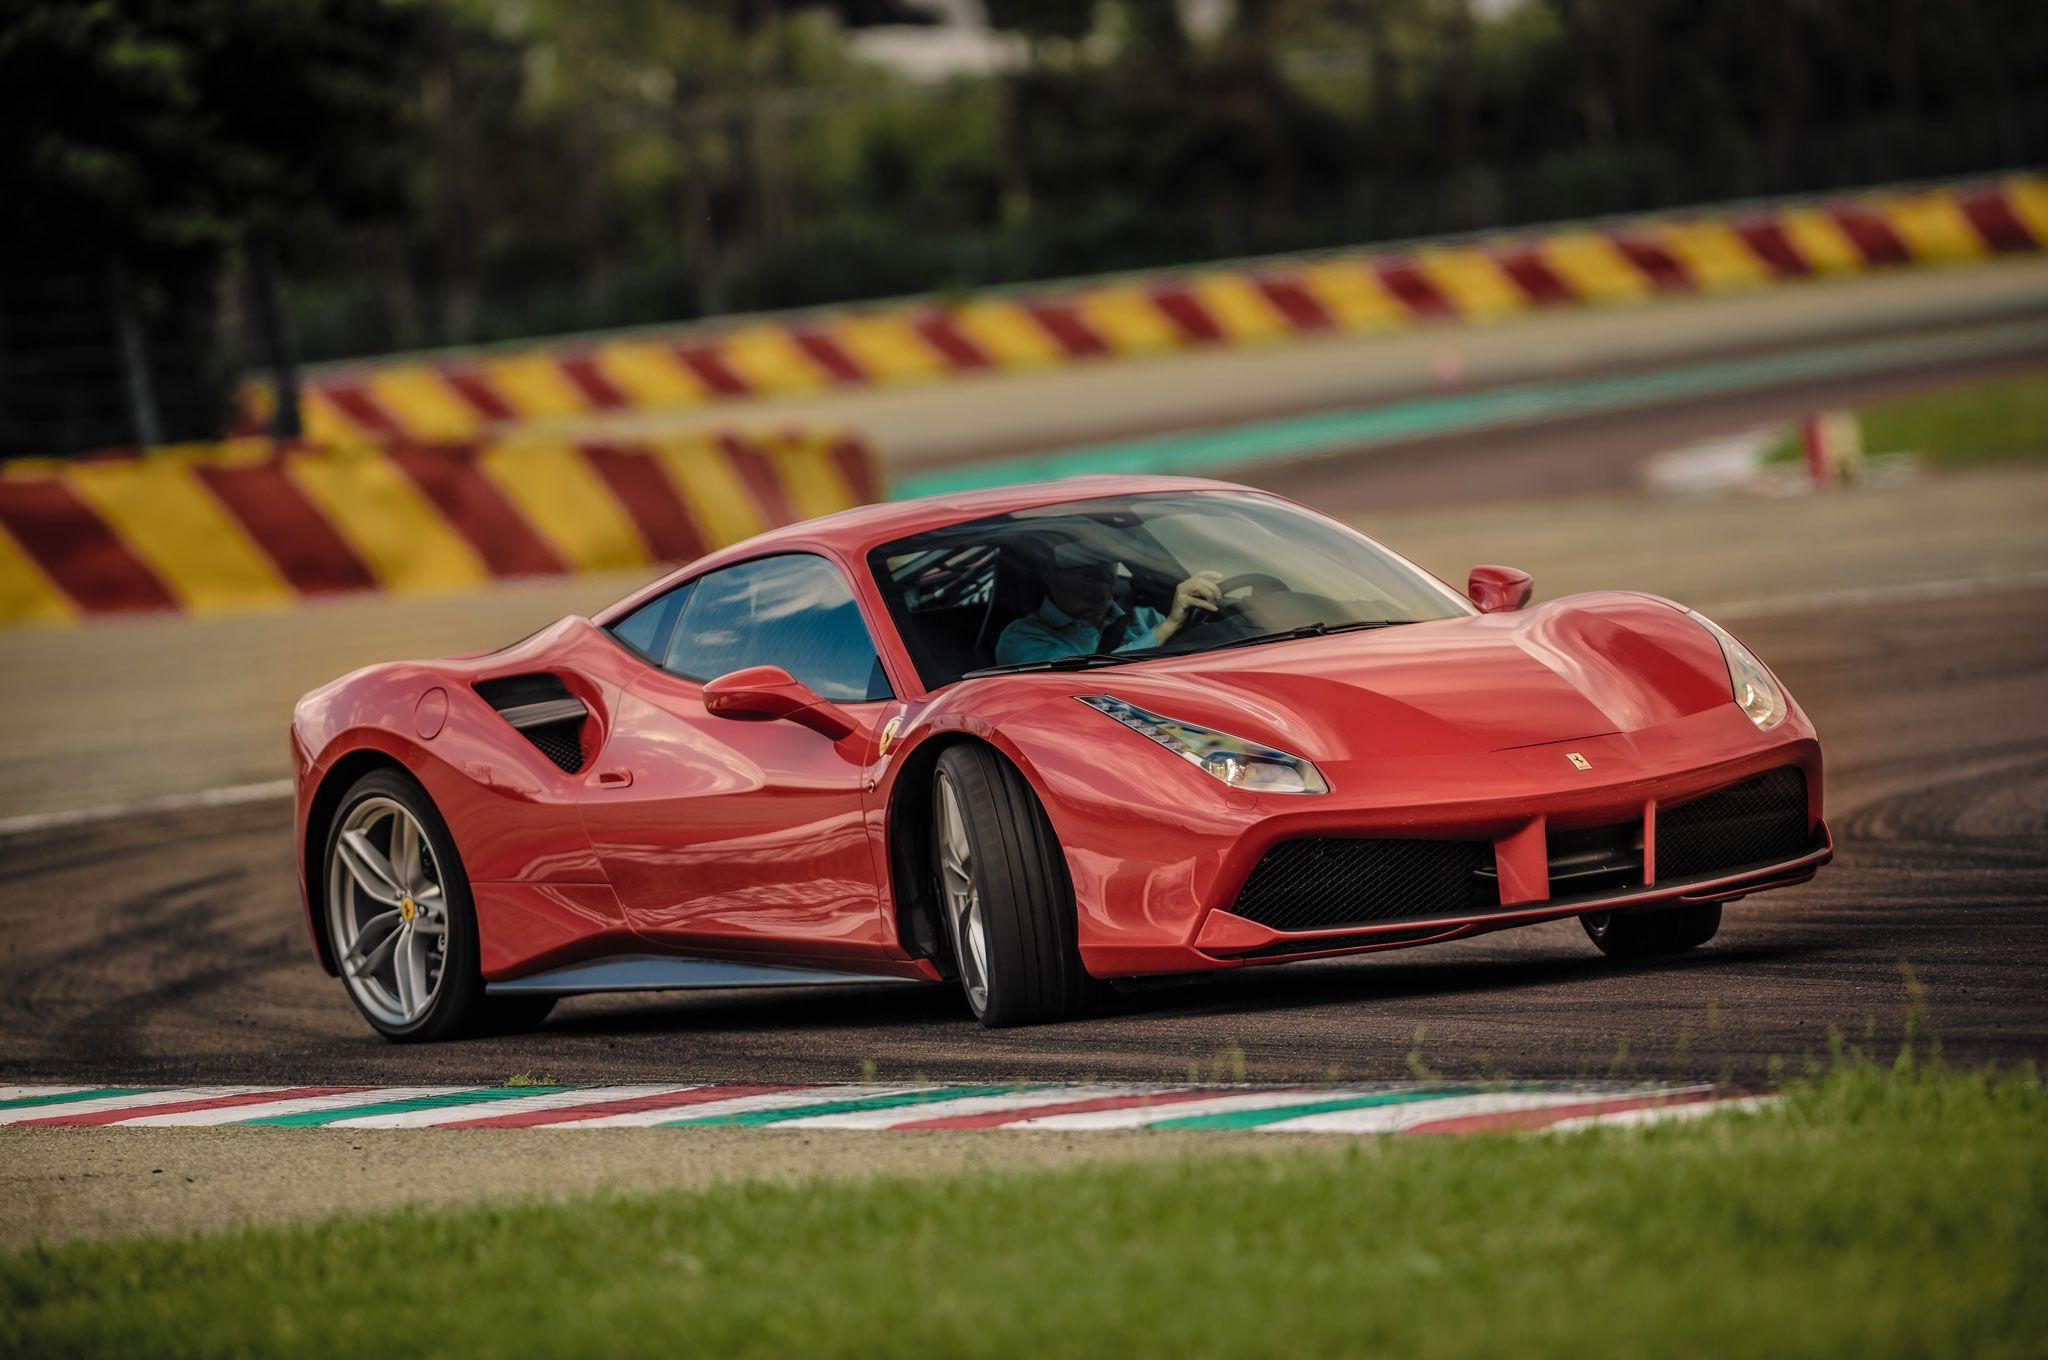 Ferrari 488 Spider Wallpapers Wallpaper Cave